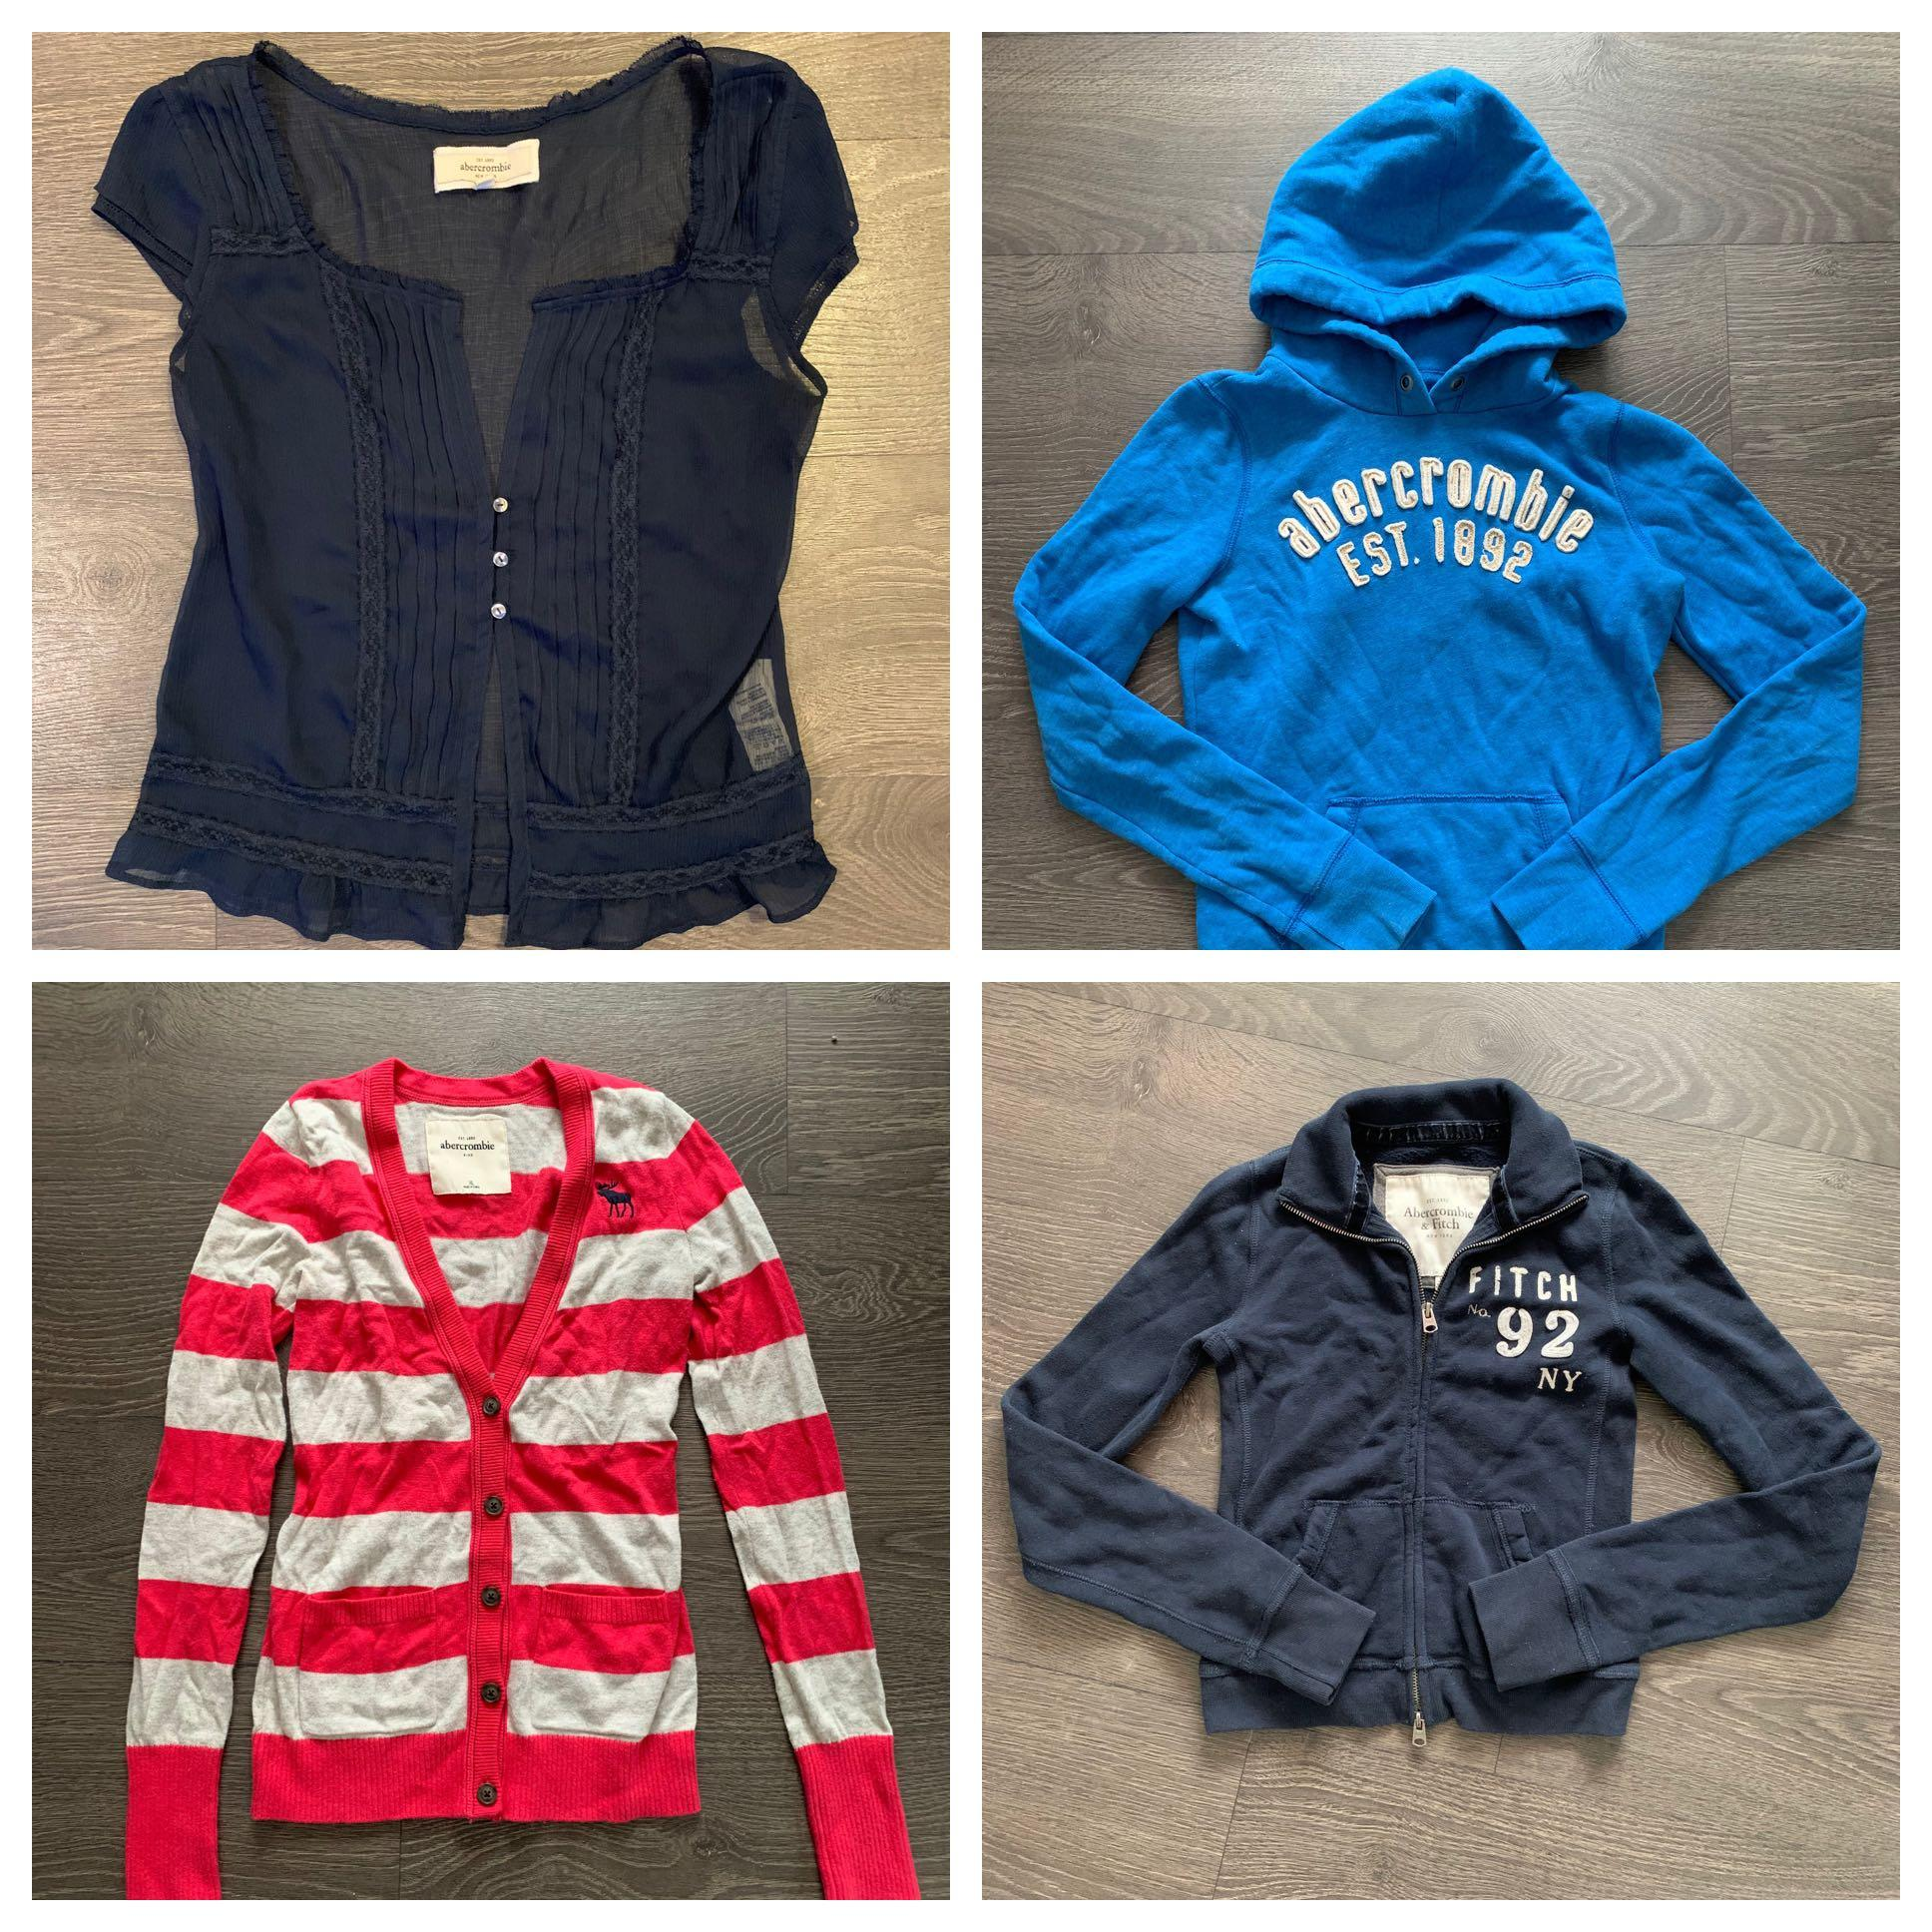 26 Piece Abercrombie A&F Hollister Lot Size XS and Small 0-2